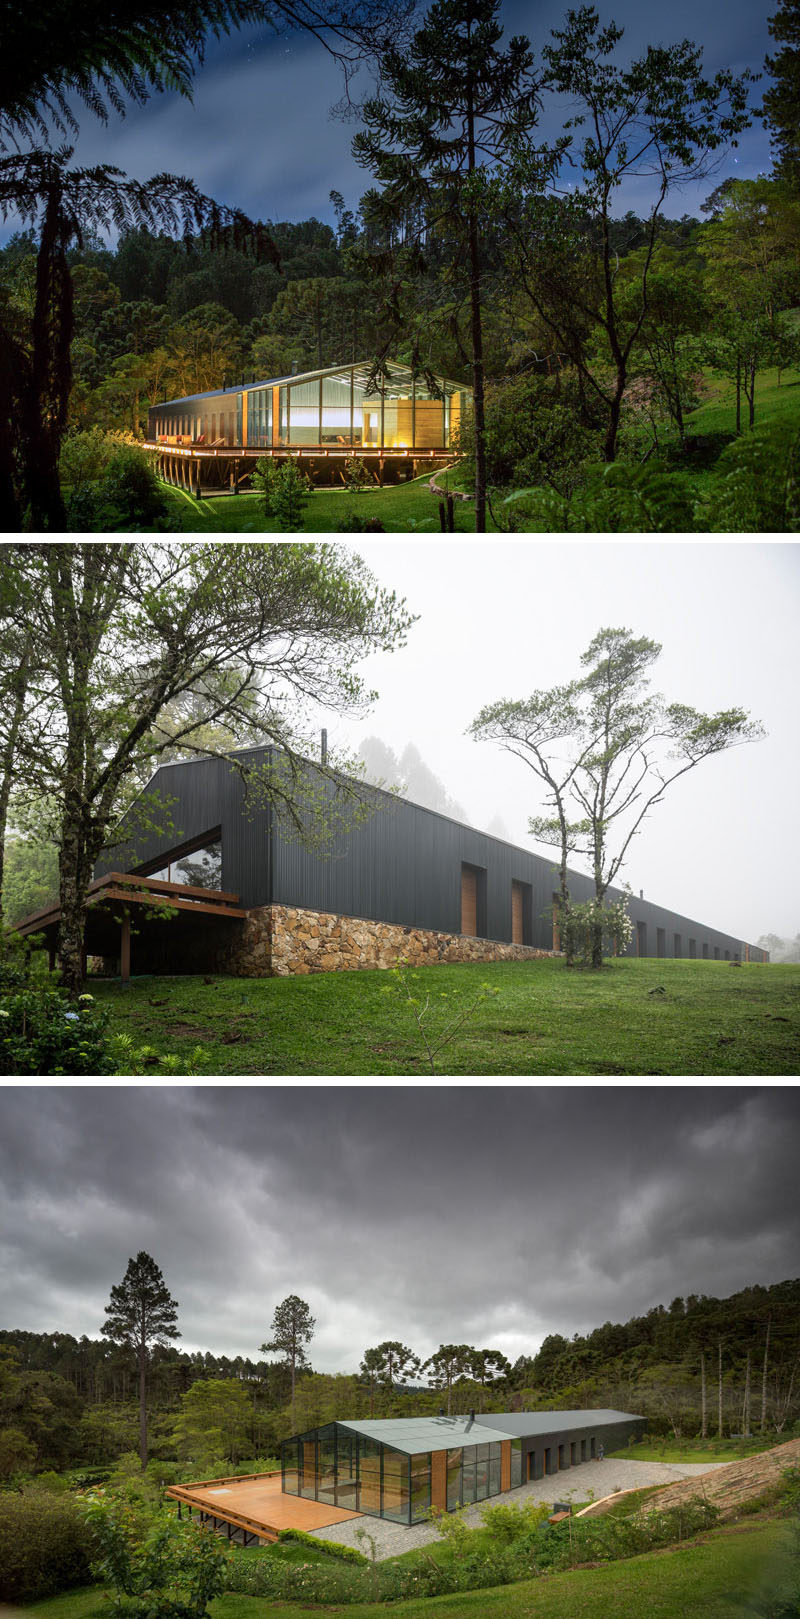 16 Bit Forest Home - secluded-modern-house-201216-458-17-800x1619_Good 16 Bit Forest Home - secluded-modern-house-201216-458-17-800x1619  HD_913133.jpg